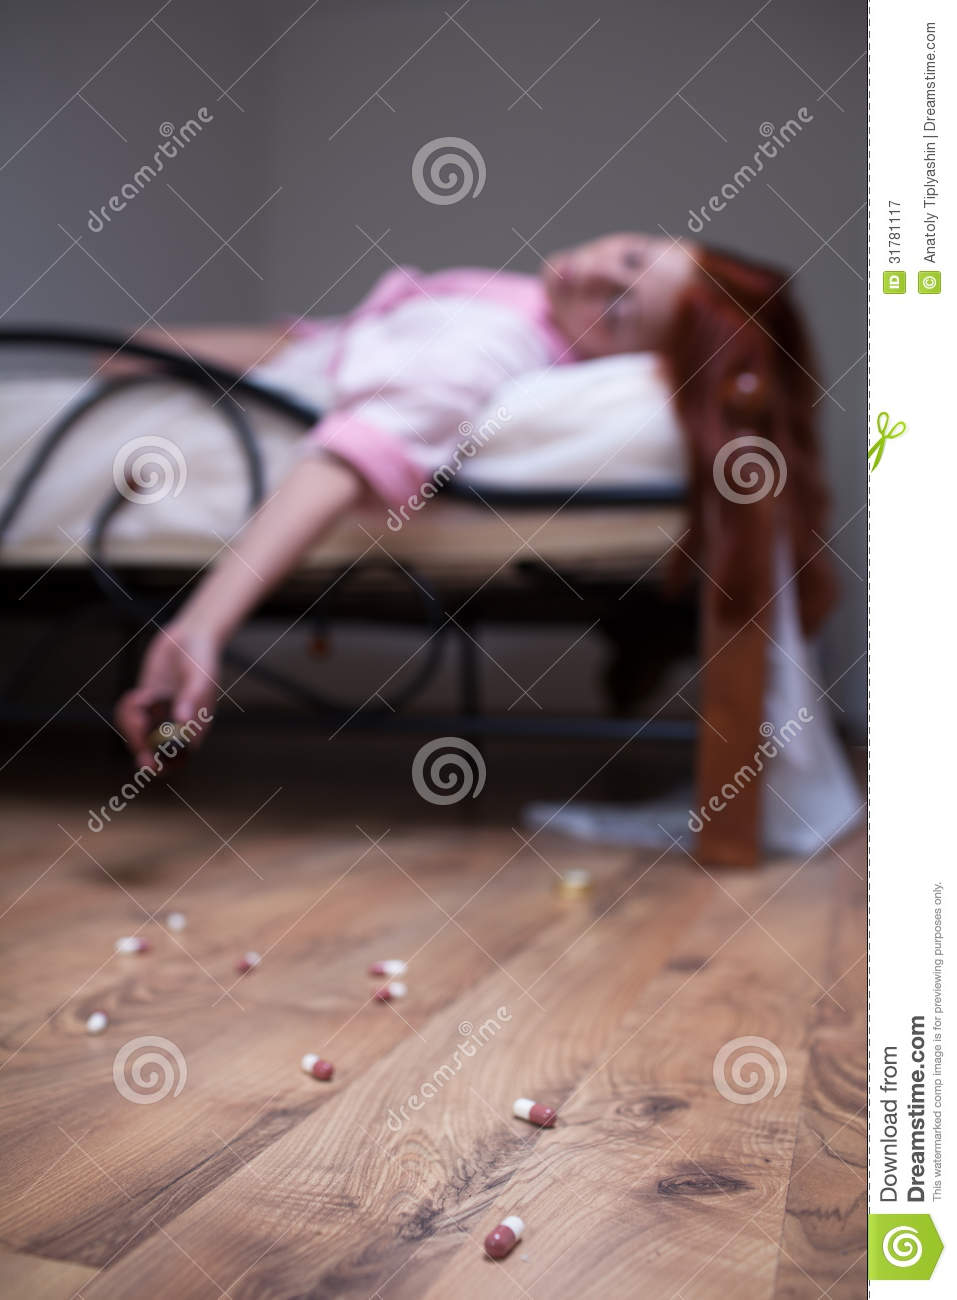 Woman In Bed Overdose Tablet Stock Image - Image of home